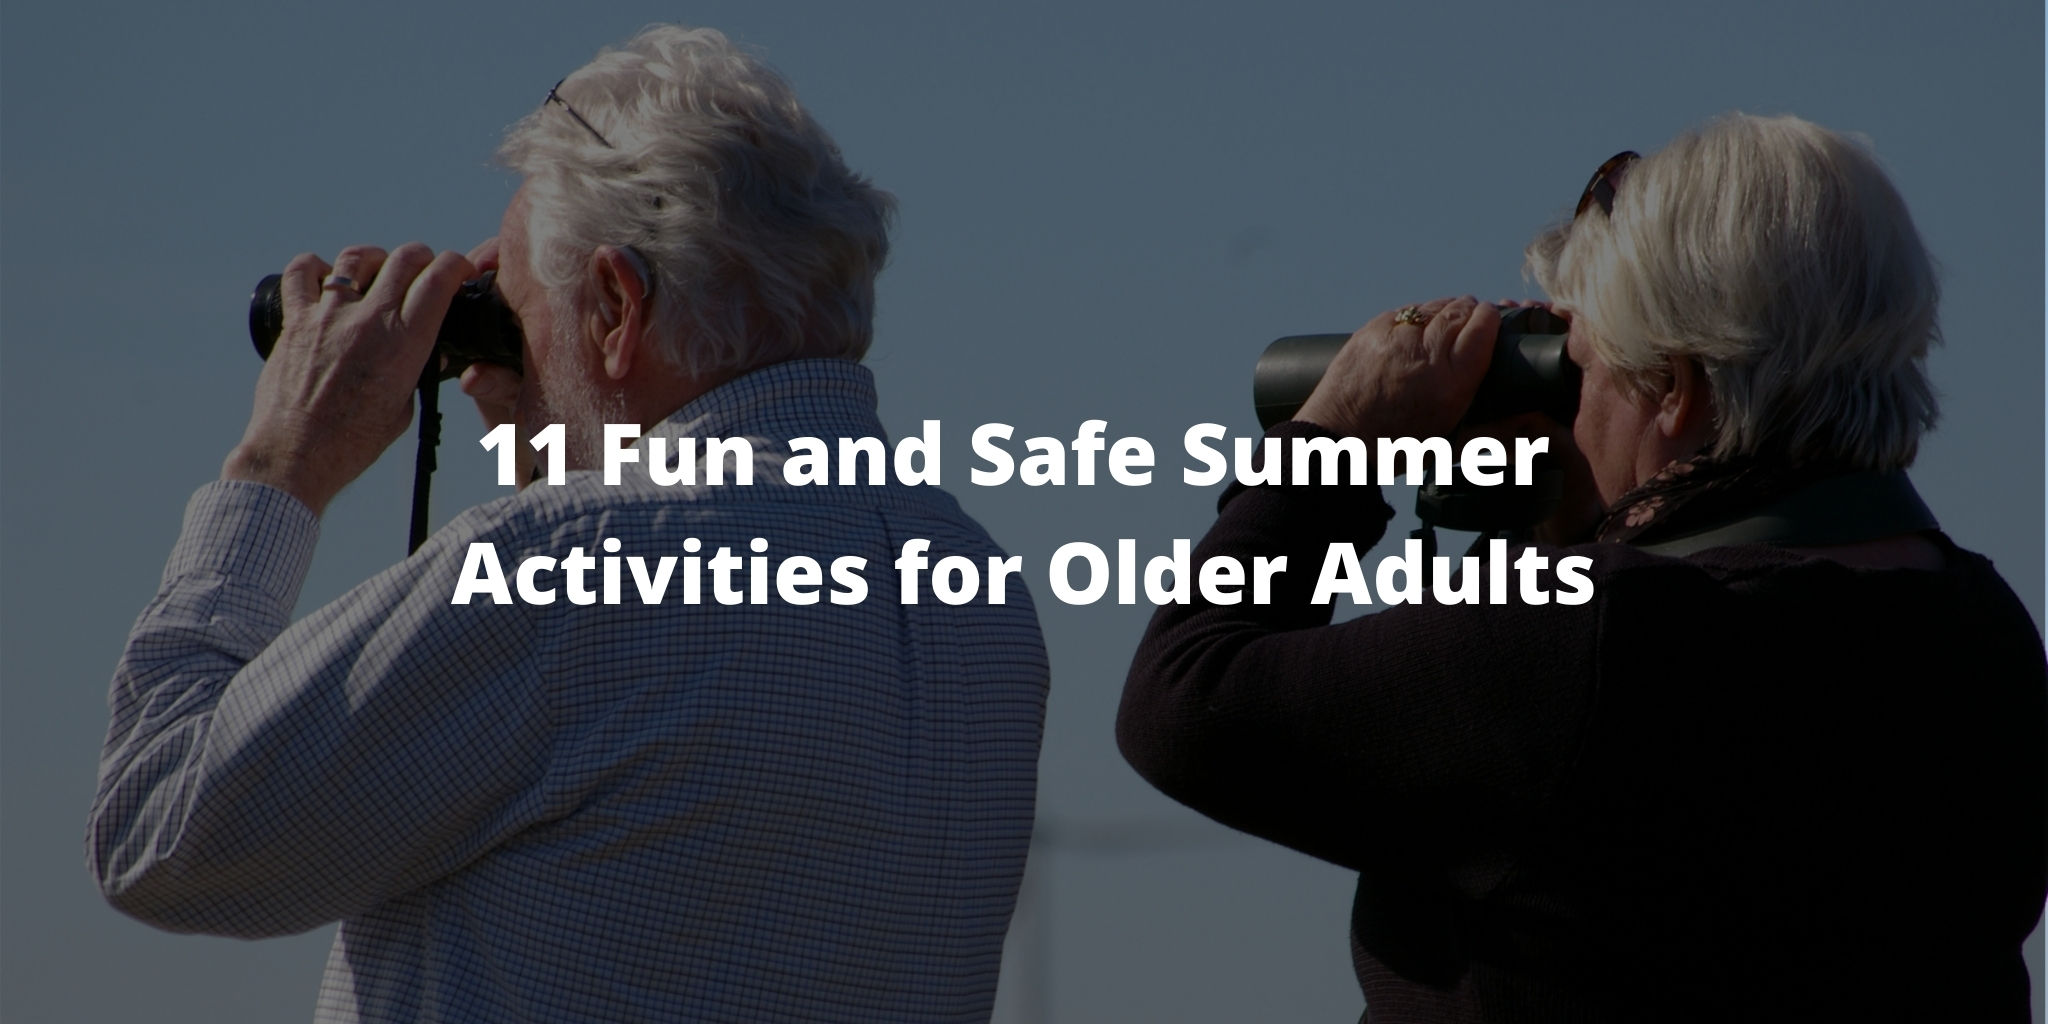 11 Fun and Safe Summer Activities for Older Adults